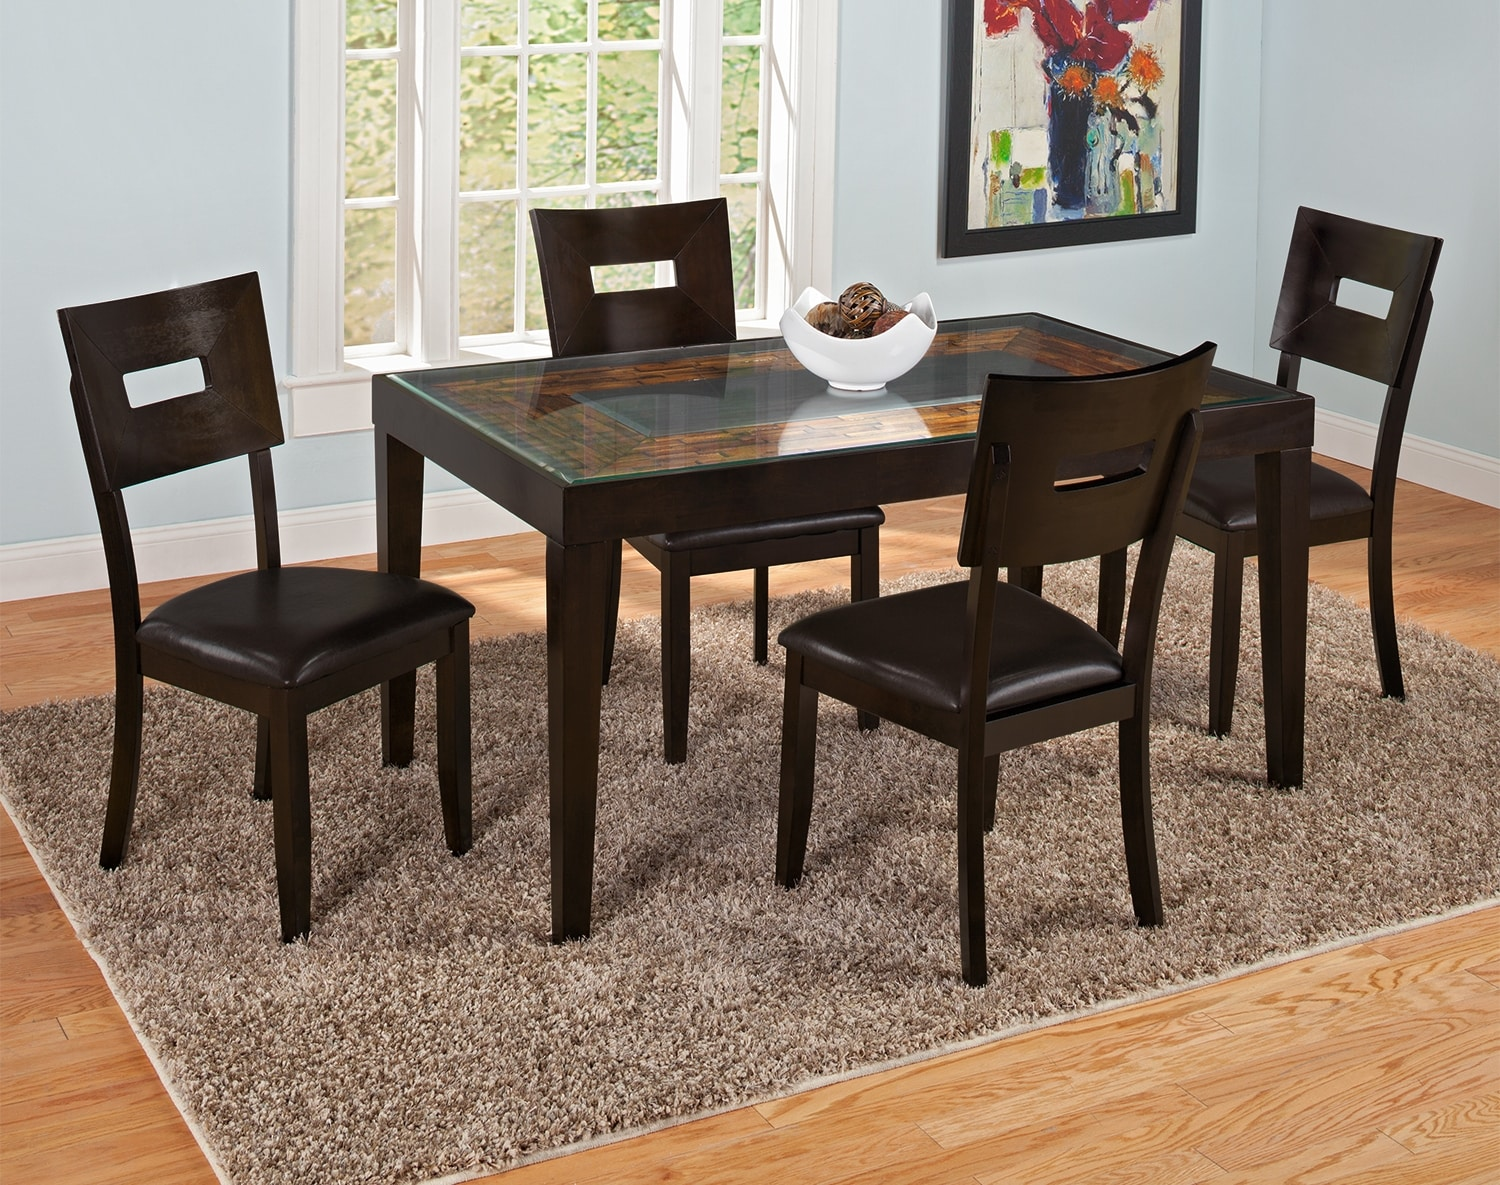 cyprus dining room collection american signature furniture. Black Bedroom Furniture Sets. Home Design Ideas